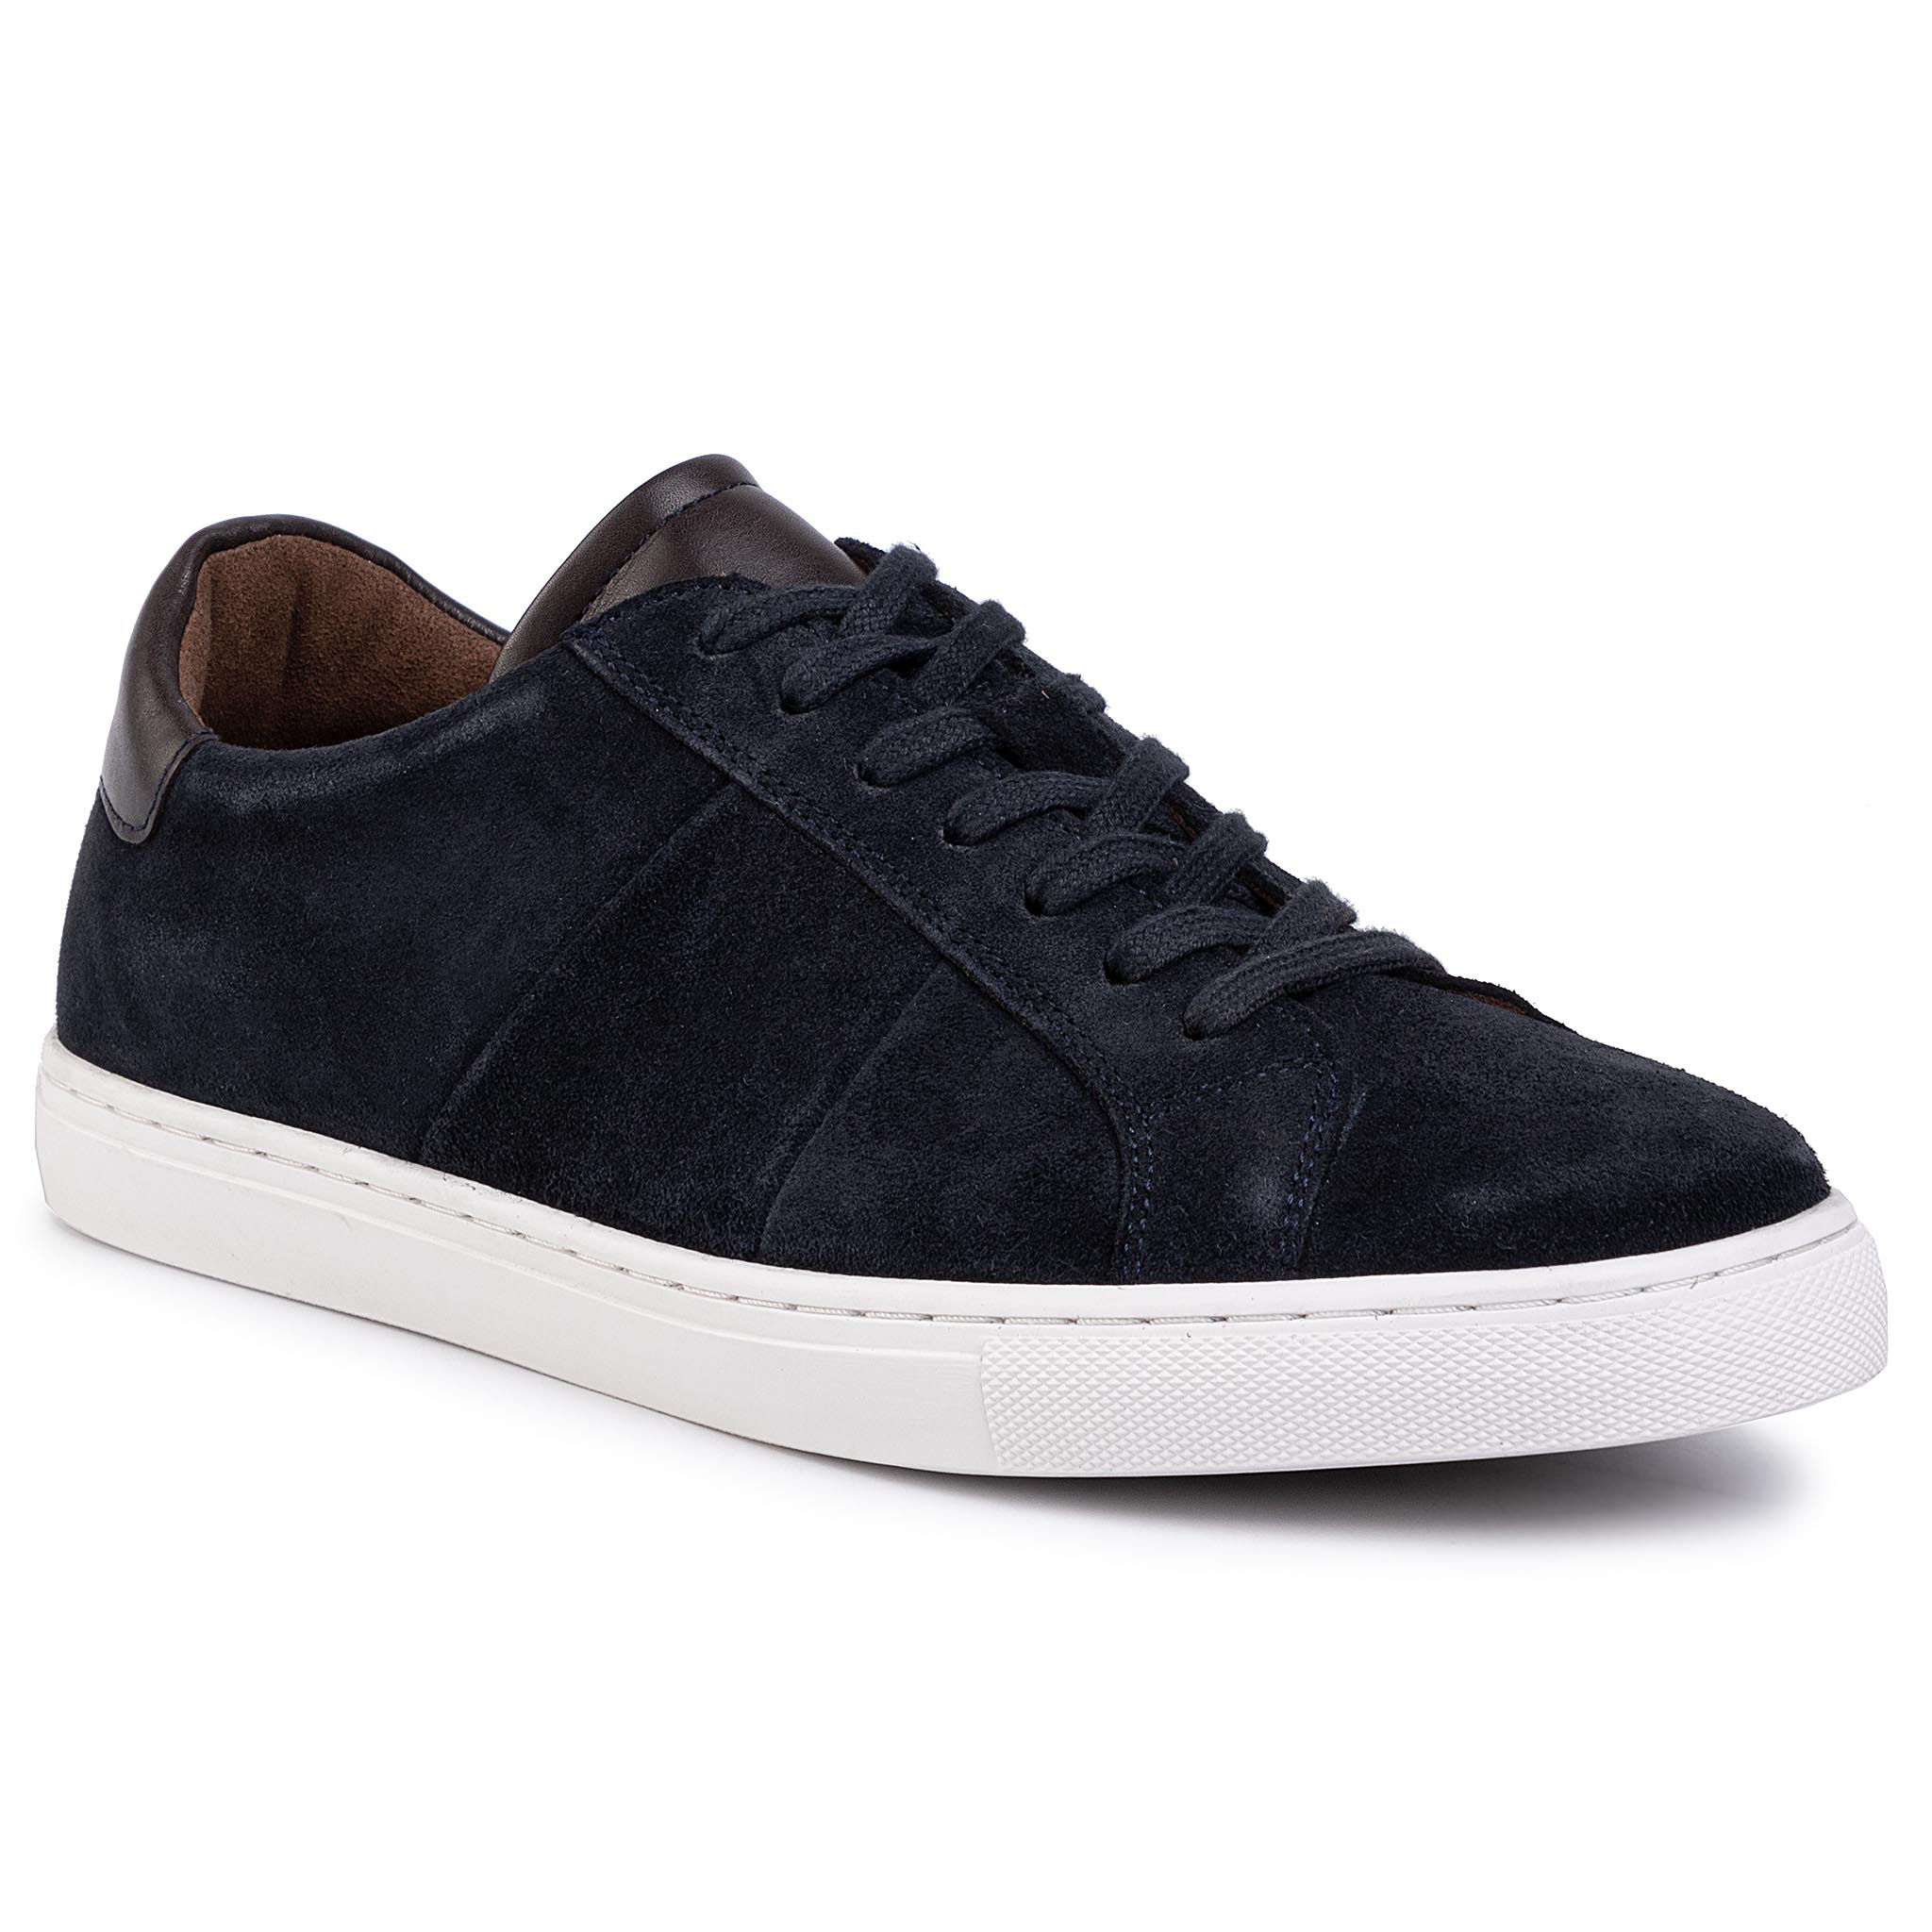 Sneakers DIGEL - Slade 1299729 20